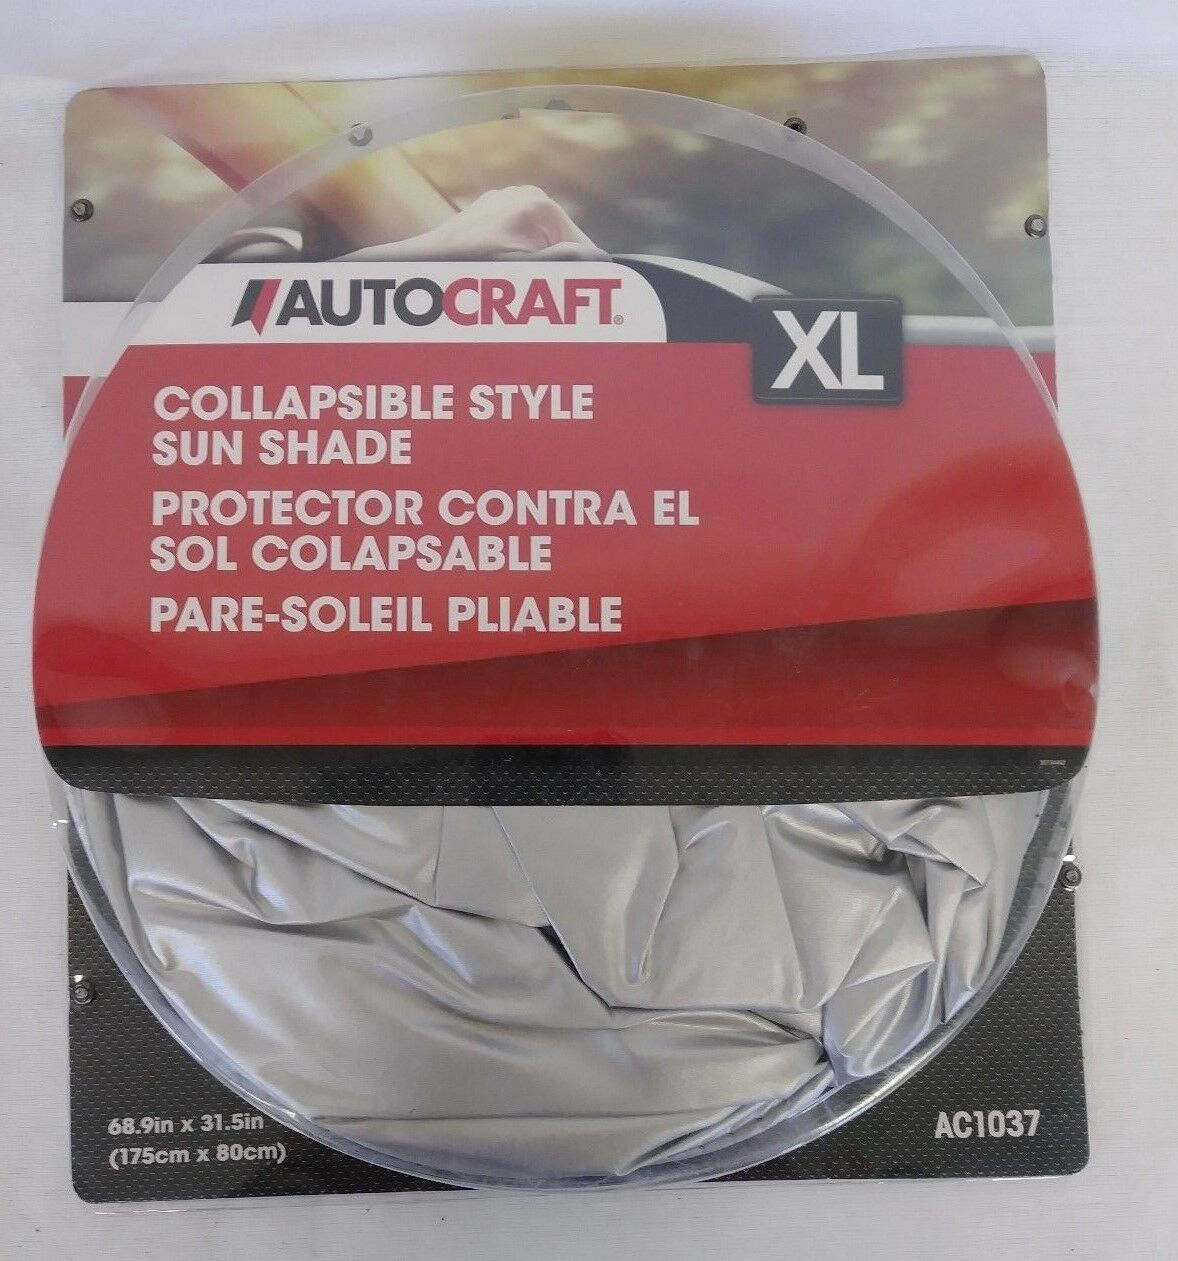 "AUTOCRAFT XL Collapsible Style Sun Shade NEW AC1037 Automotive 68.9/"" X 31.5/"""